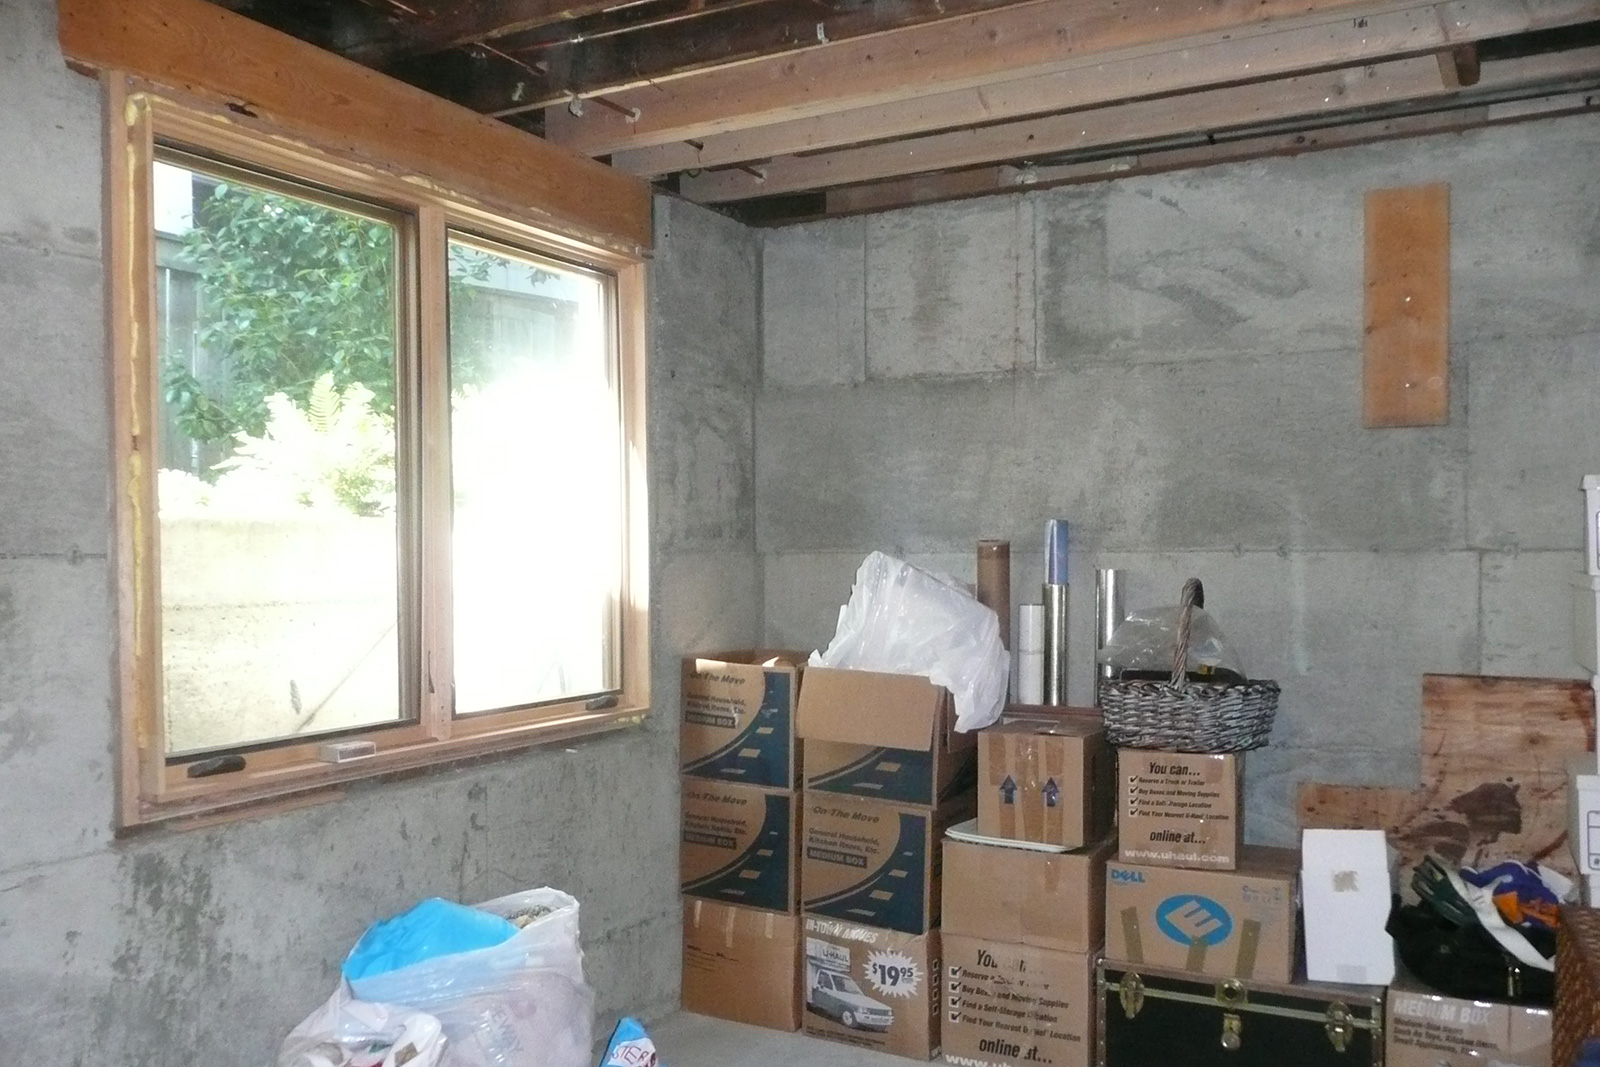 & Evaluate Basement Finishing Plan | Basement Finishing Guide